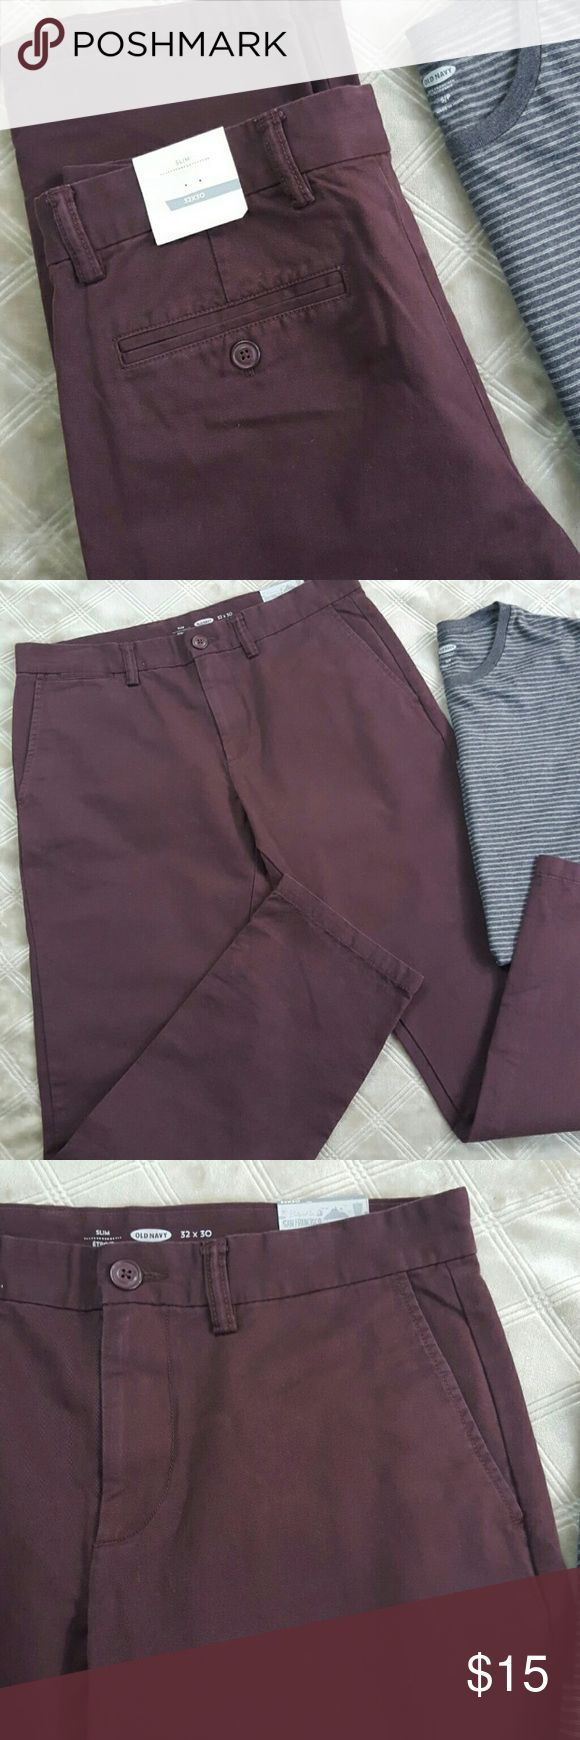 NWT Old Navy Plum Pants Slim Cut 32x30 New. Old Navy Pants Chinos & Khakis